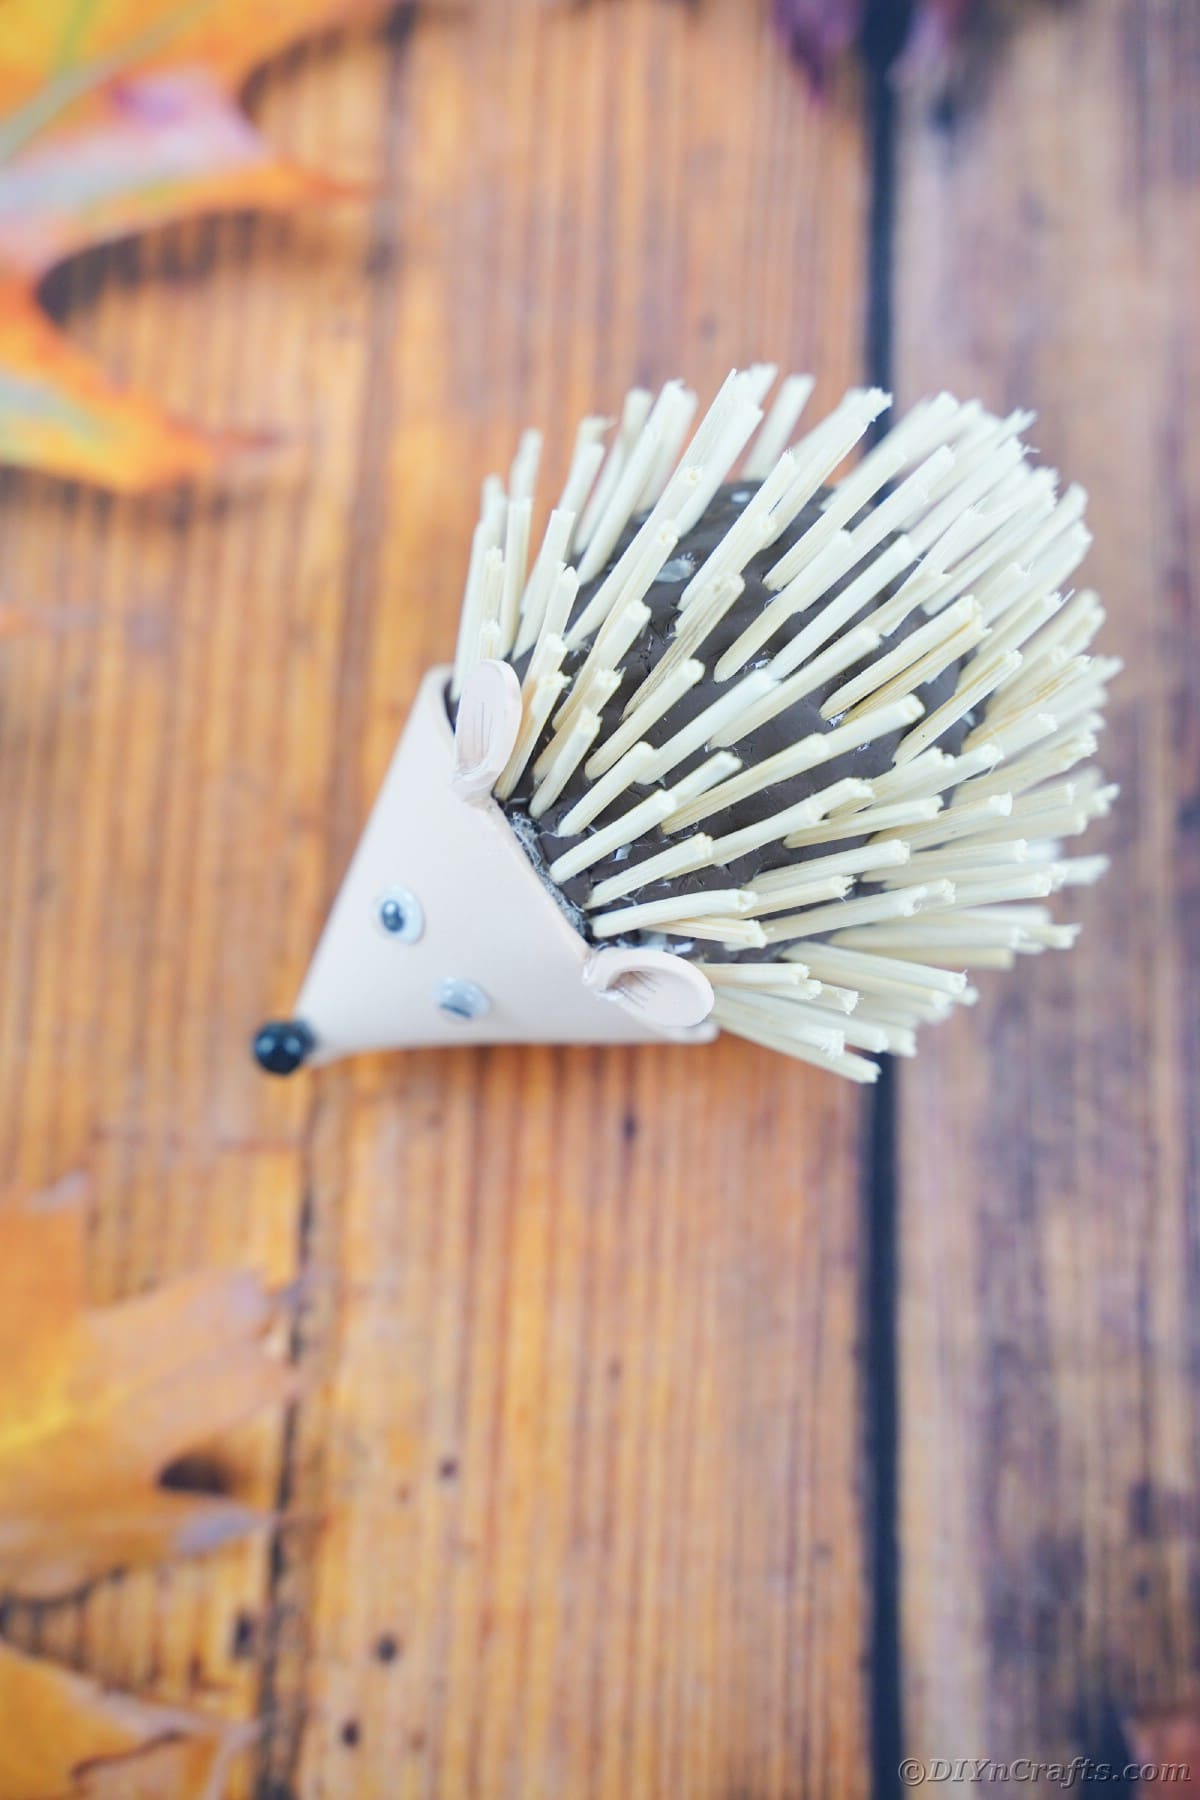 Wood slat table with fall leaves and toy hedgehog on top